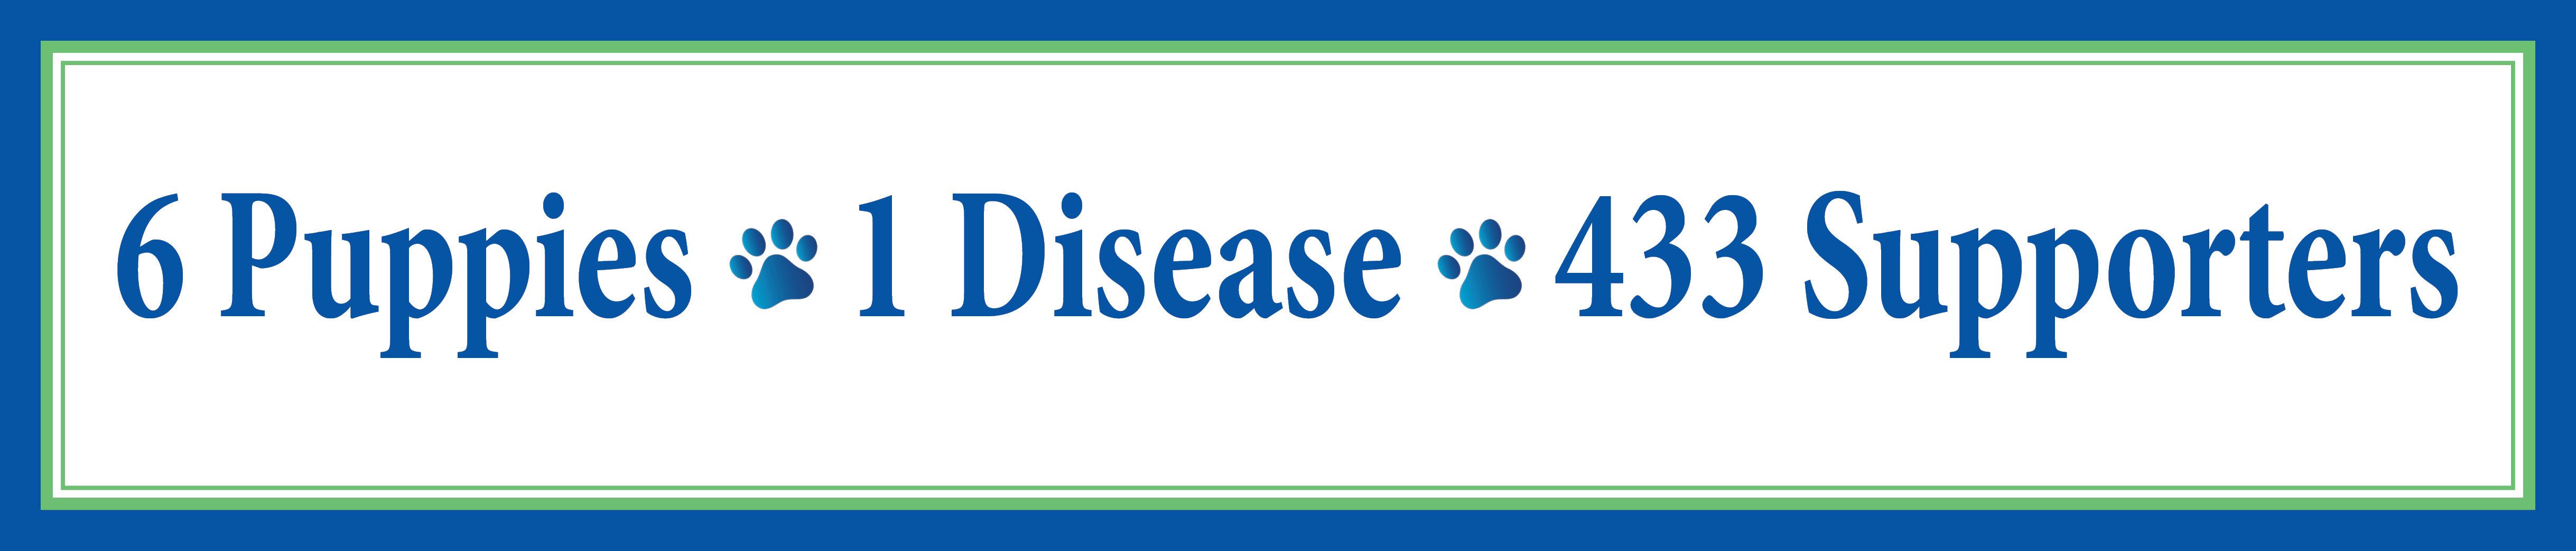 6 Puppies  |  1 Disease  |  433 Supporters